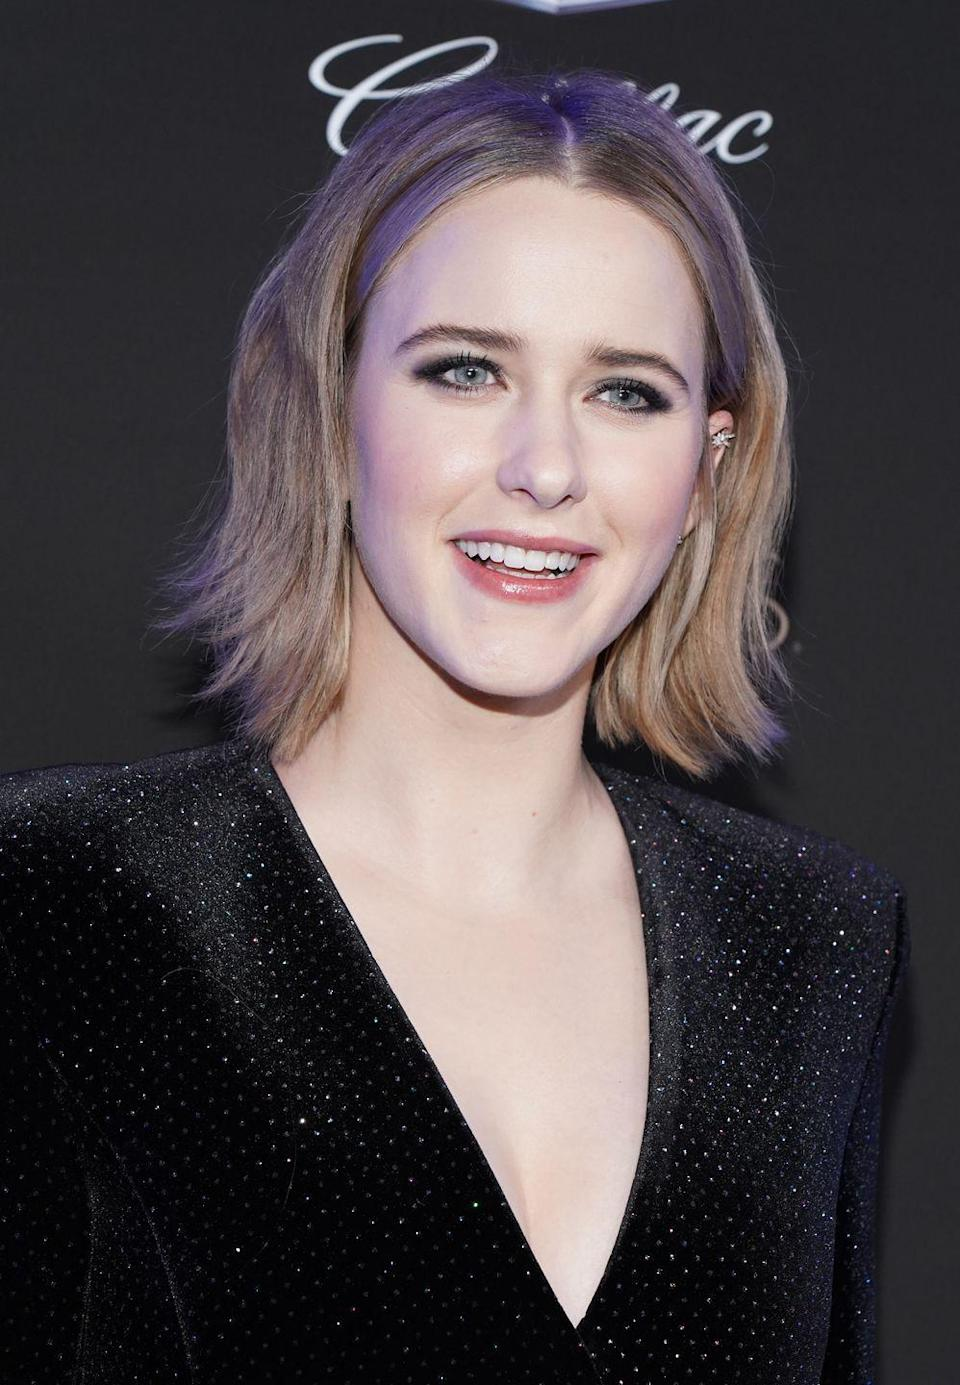 <p><strong>Rachel Brosnahan</strong> may be known for the dark, raven locks she sports as Midge on <em>The Marvelous Mrs. Maisel,</em> but she's naturally a blonde! This dirty blonde shade looks just as natural as the dark brown we're used to seeing on her because it provides contrast against her ivory skin tone — girls going blonde, take note: platinum isn't always the way to go.</p>